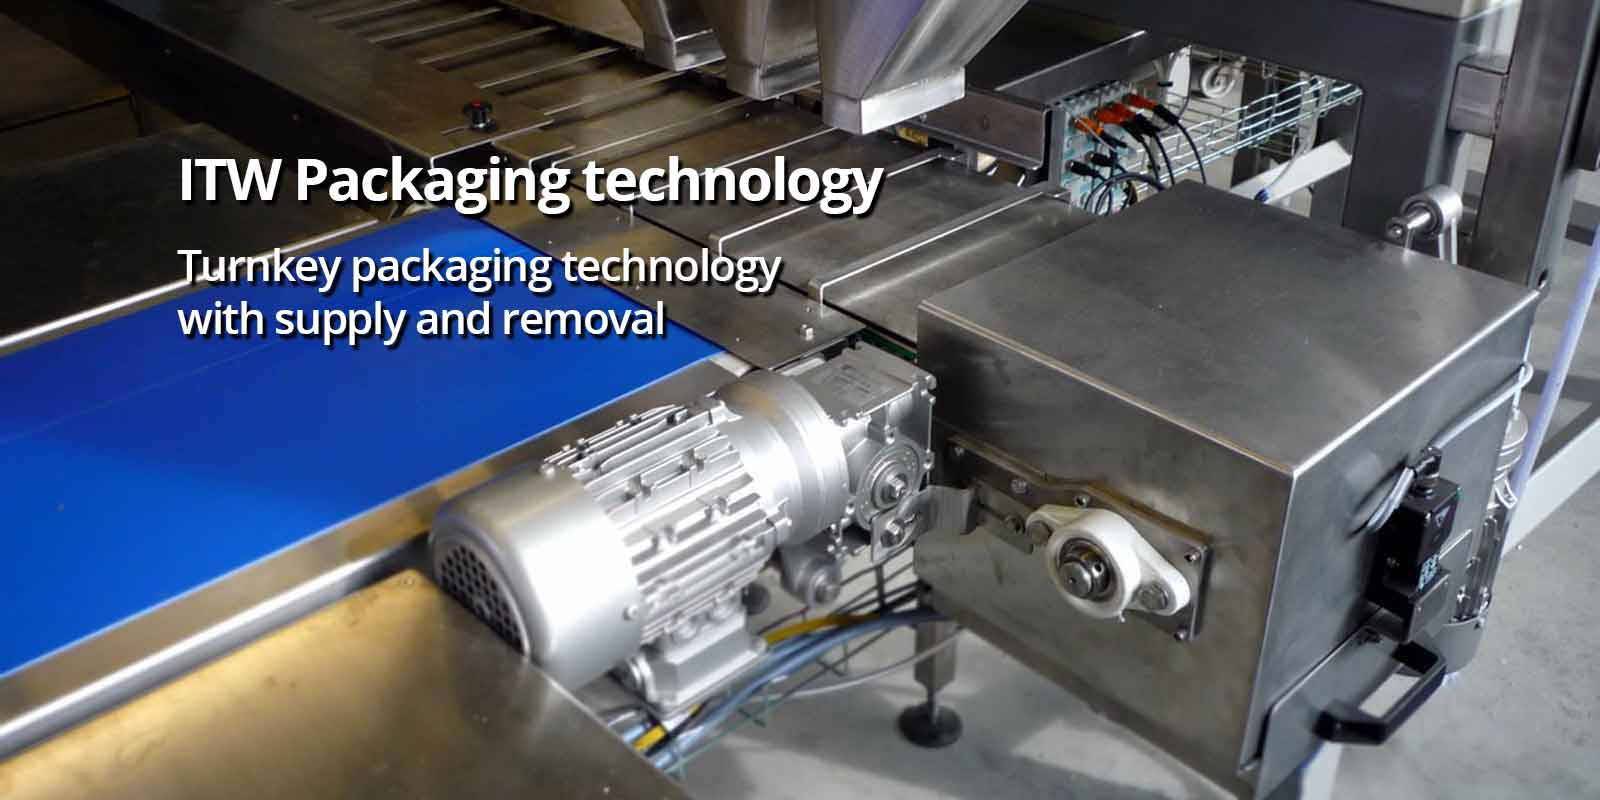 ITW Packaging technology Turnkey packaging technology with supply and removal